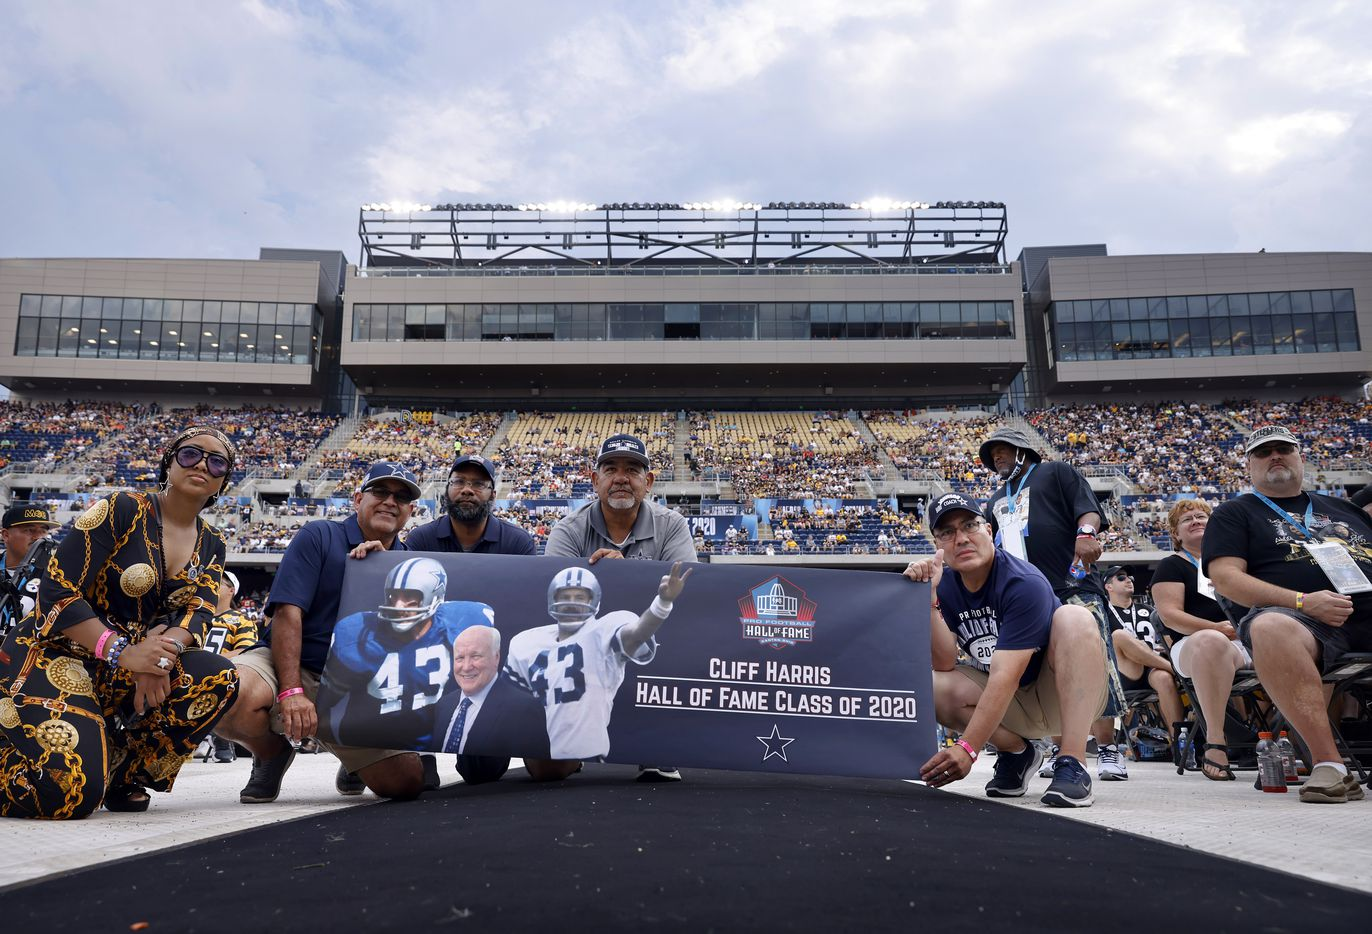 Dallas Cowboys fans display a banner of Pro Football Hall of Fame inductee Cliff Harris of the Dallas Cowboys as he spoke during the Centennial Class of 2020 enshrinement ceremony at Tom Benson Hall of Fame Stadium in Canton, Ohio, Saturday, August 7, 2021. (Tom Fox/The Dallas Morning News)